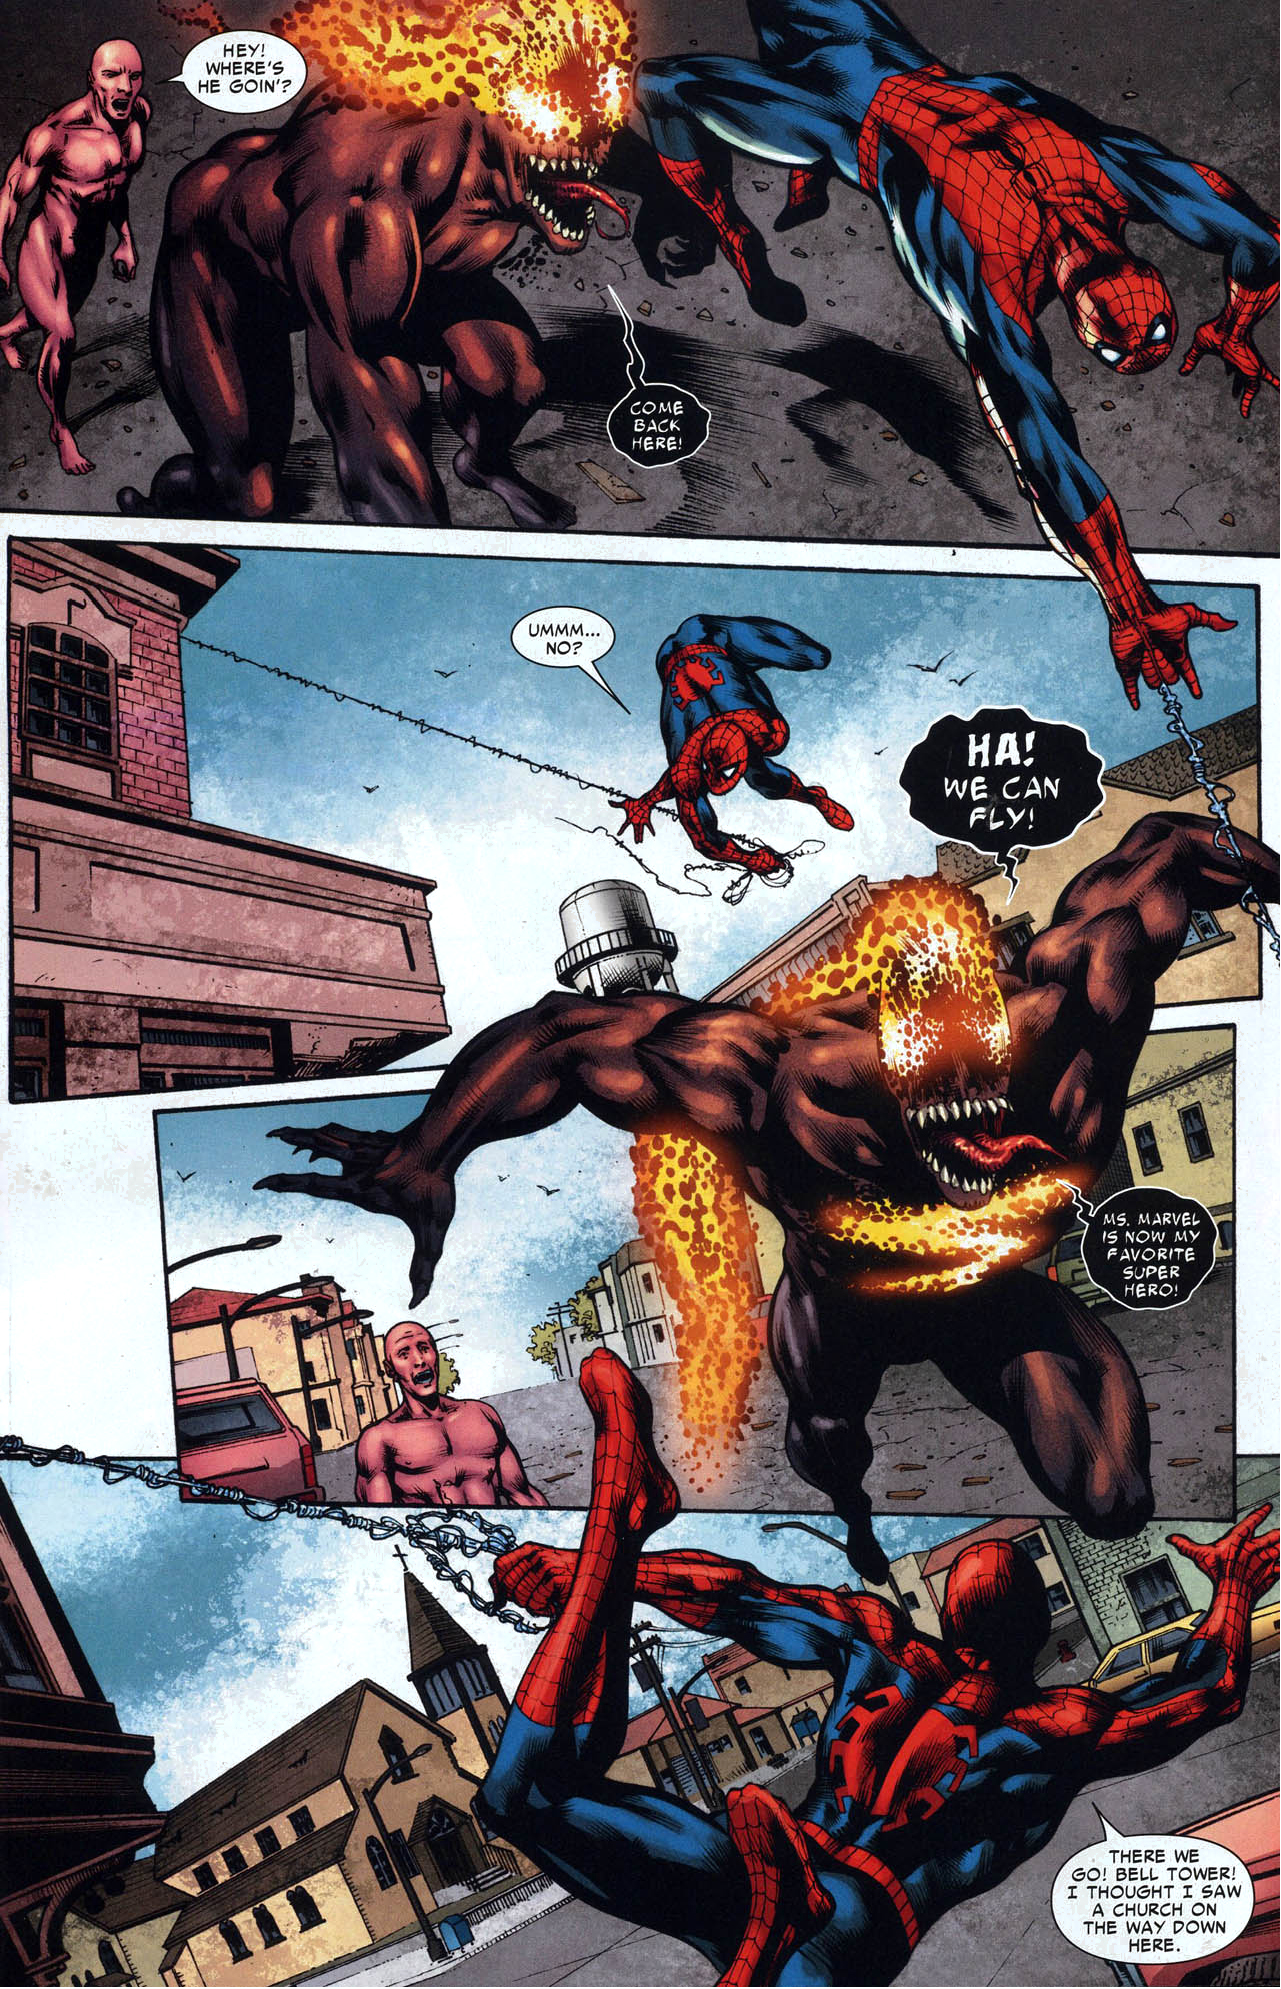 Spider-Man VS Miss Marvel With Symbiote | Comicnewbies